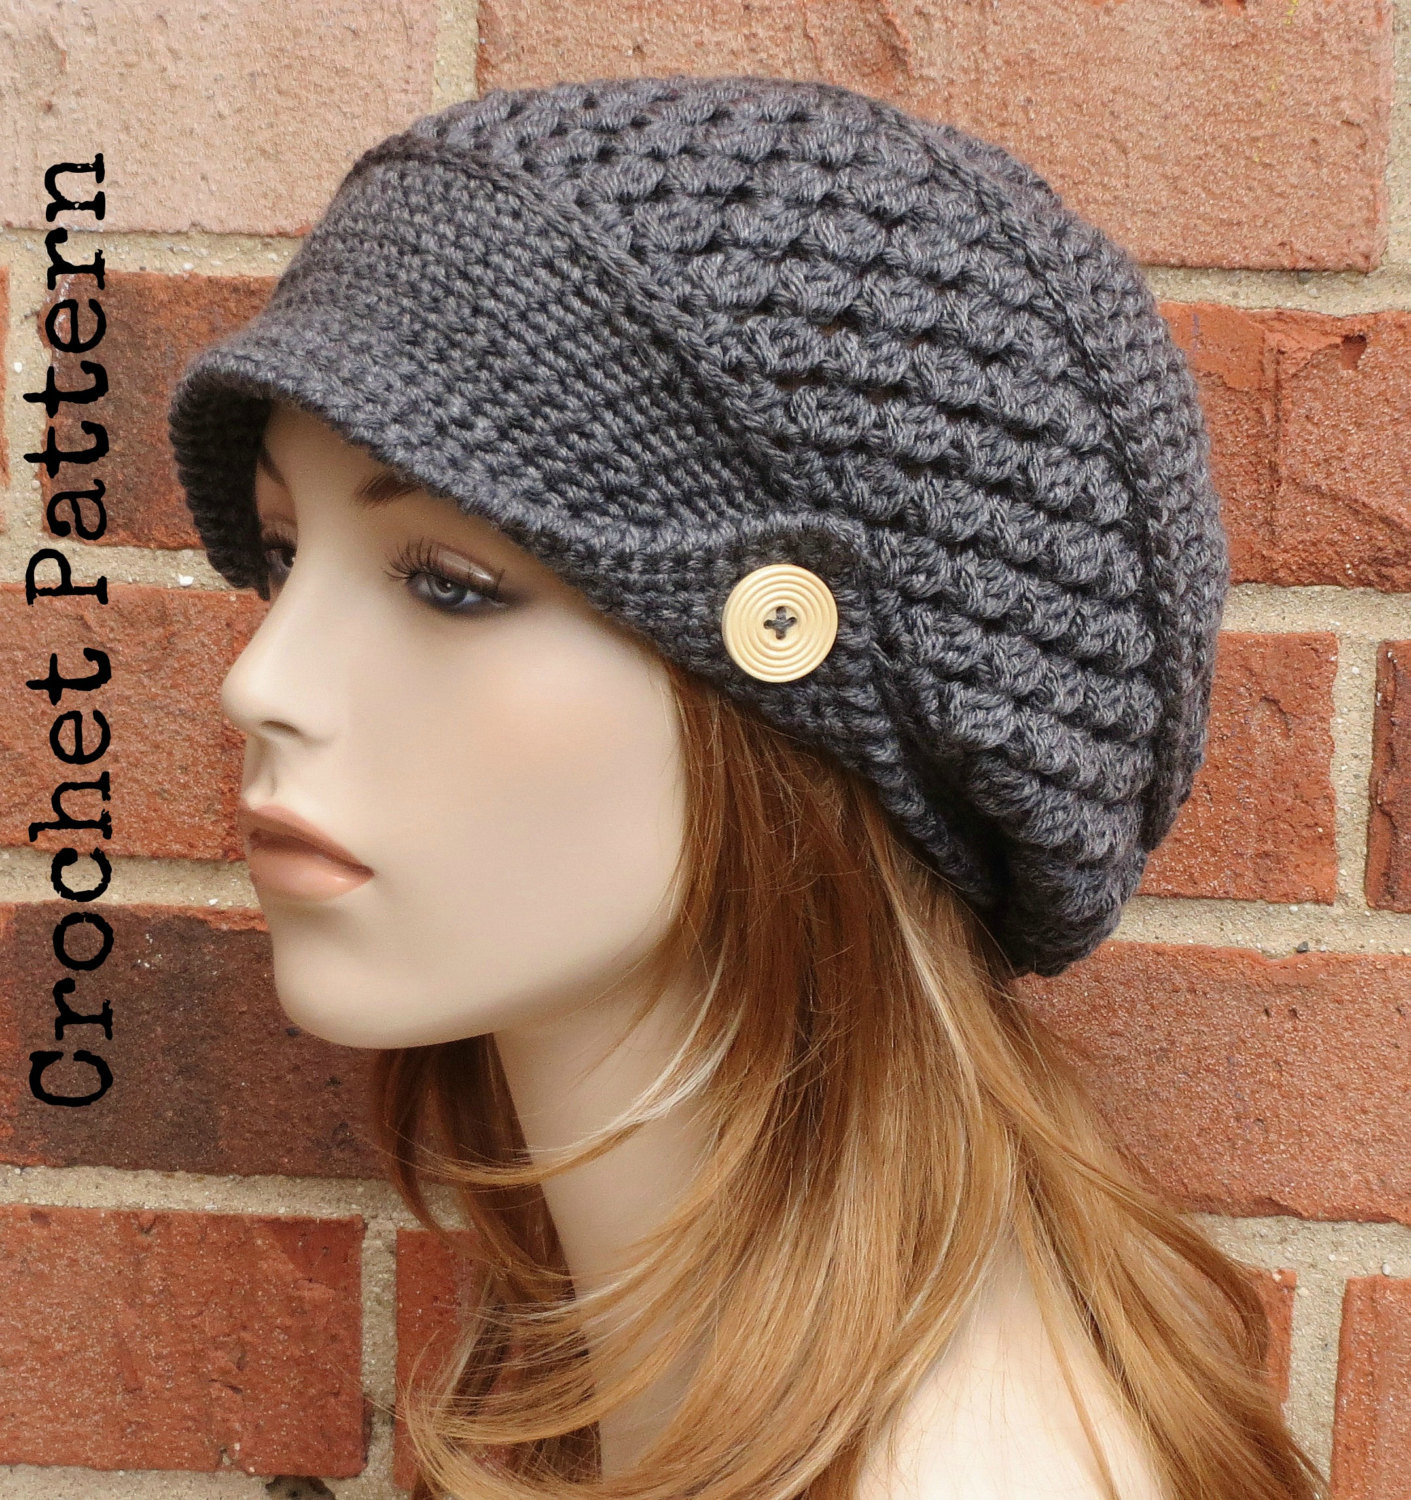 New Crochet Patterns for Women S Hats Crochet and Knit Crochet Beanie Tutorial Of Attractive 48 Pics Crochet Beanie Tutorial